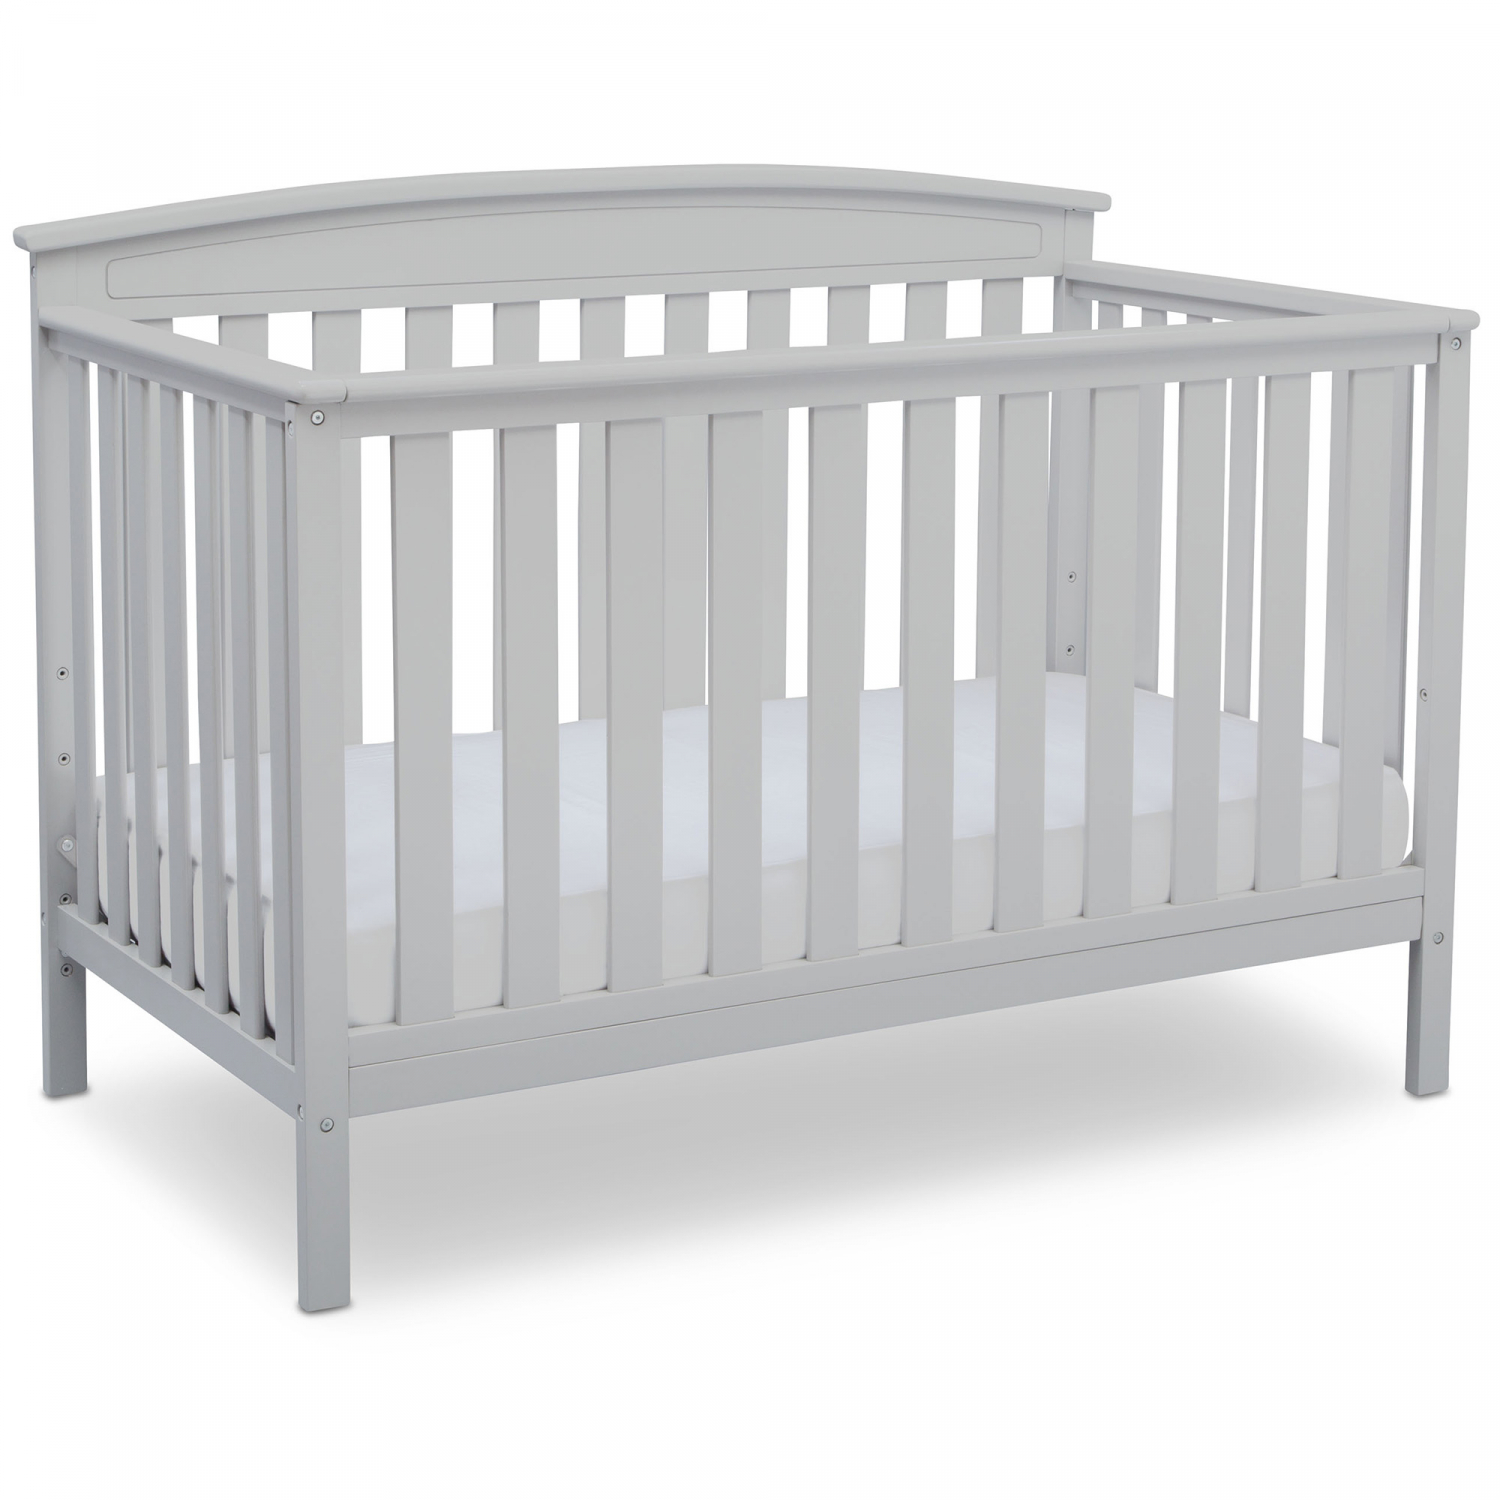 Baby Crib Convert to Full Toddler Bed White Sturdy Wood ...